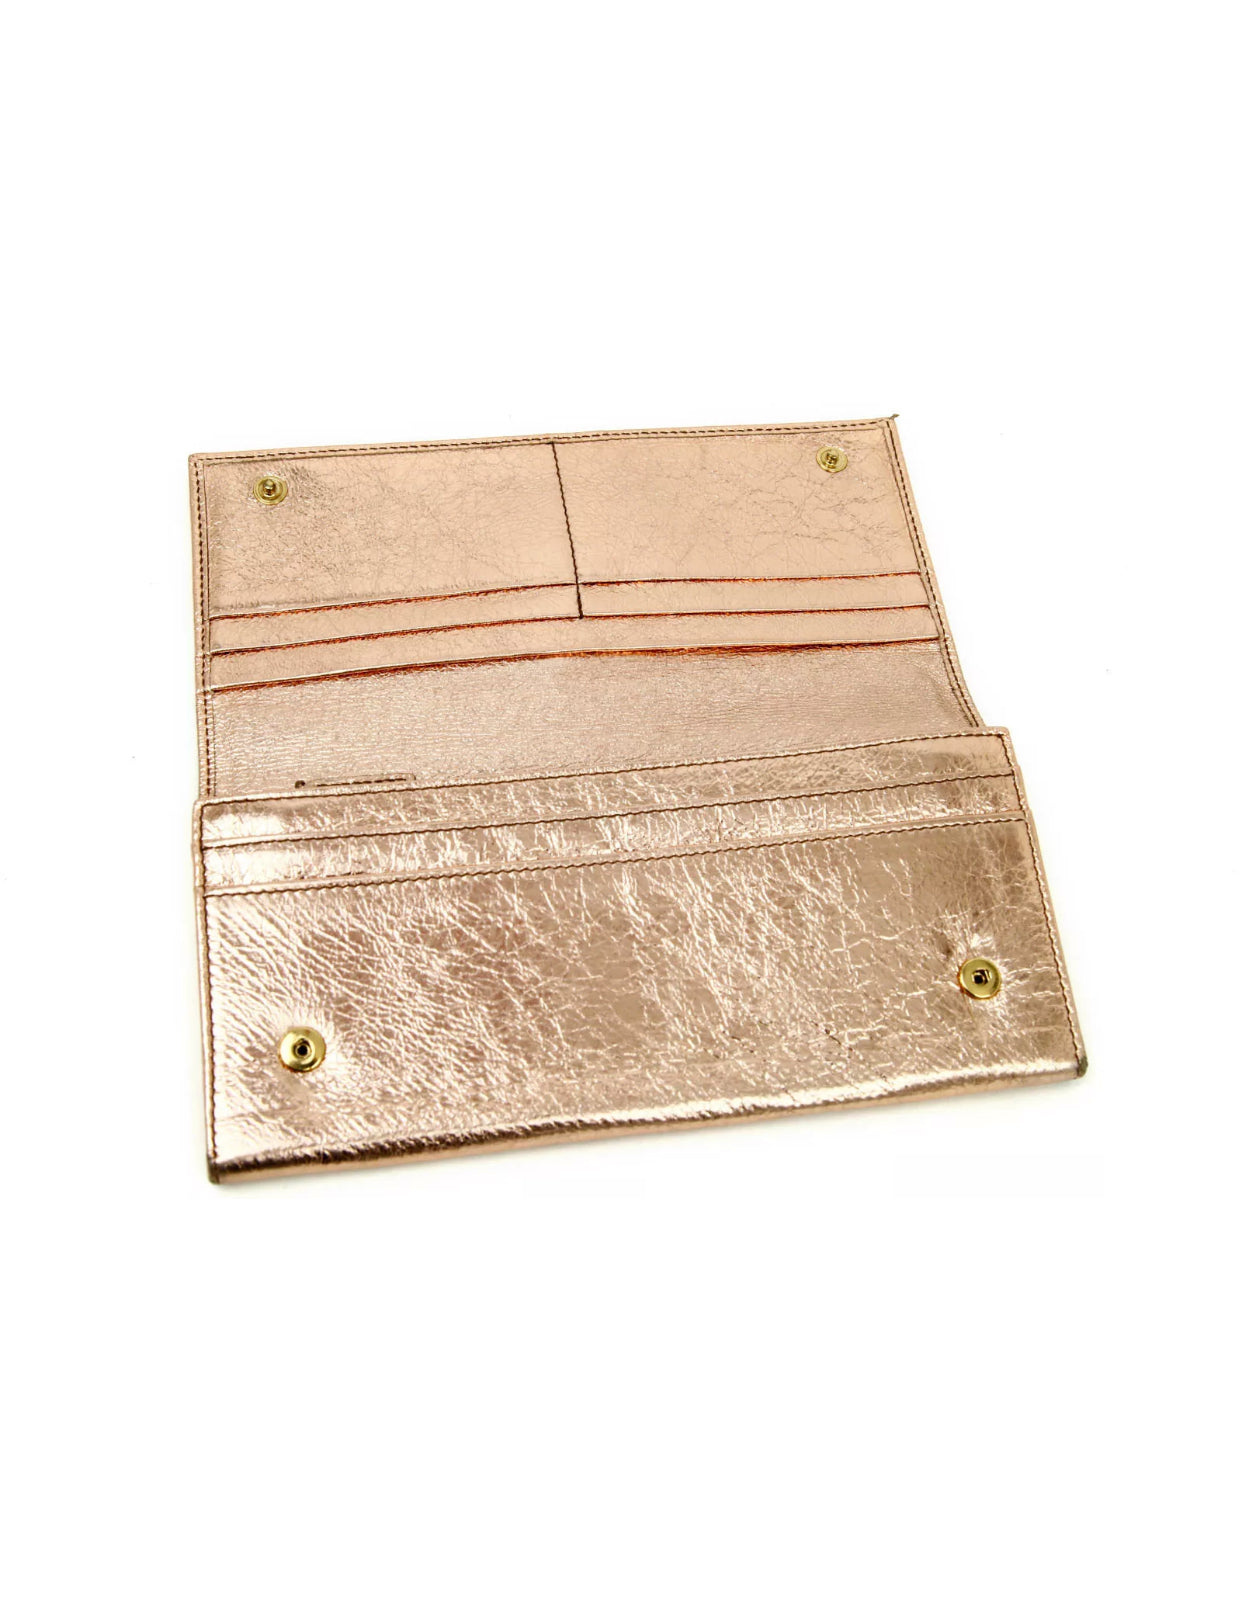 YSL Metallic Wallet Clutch